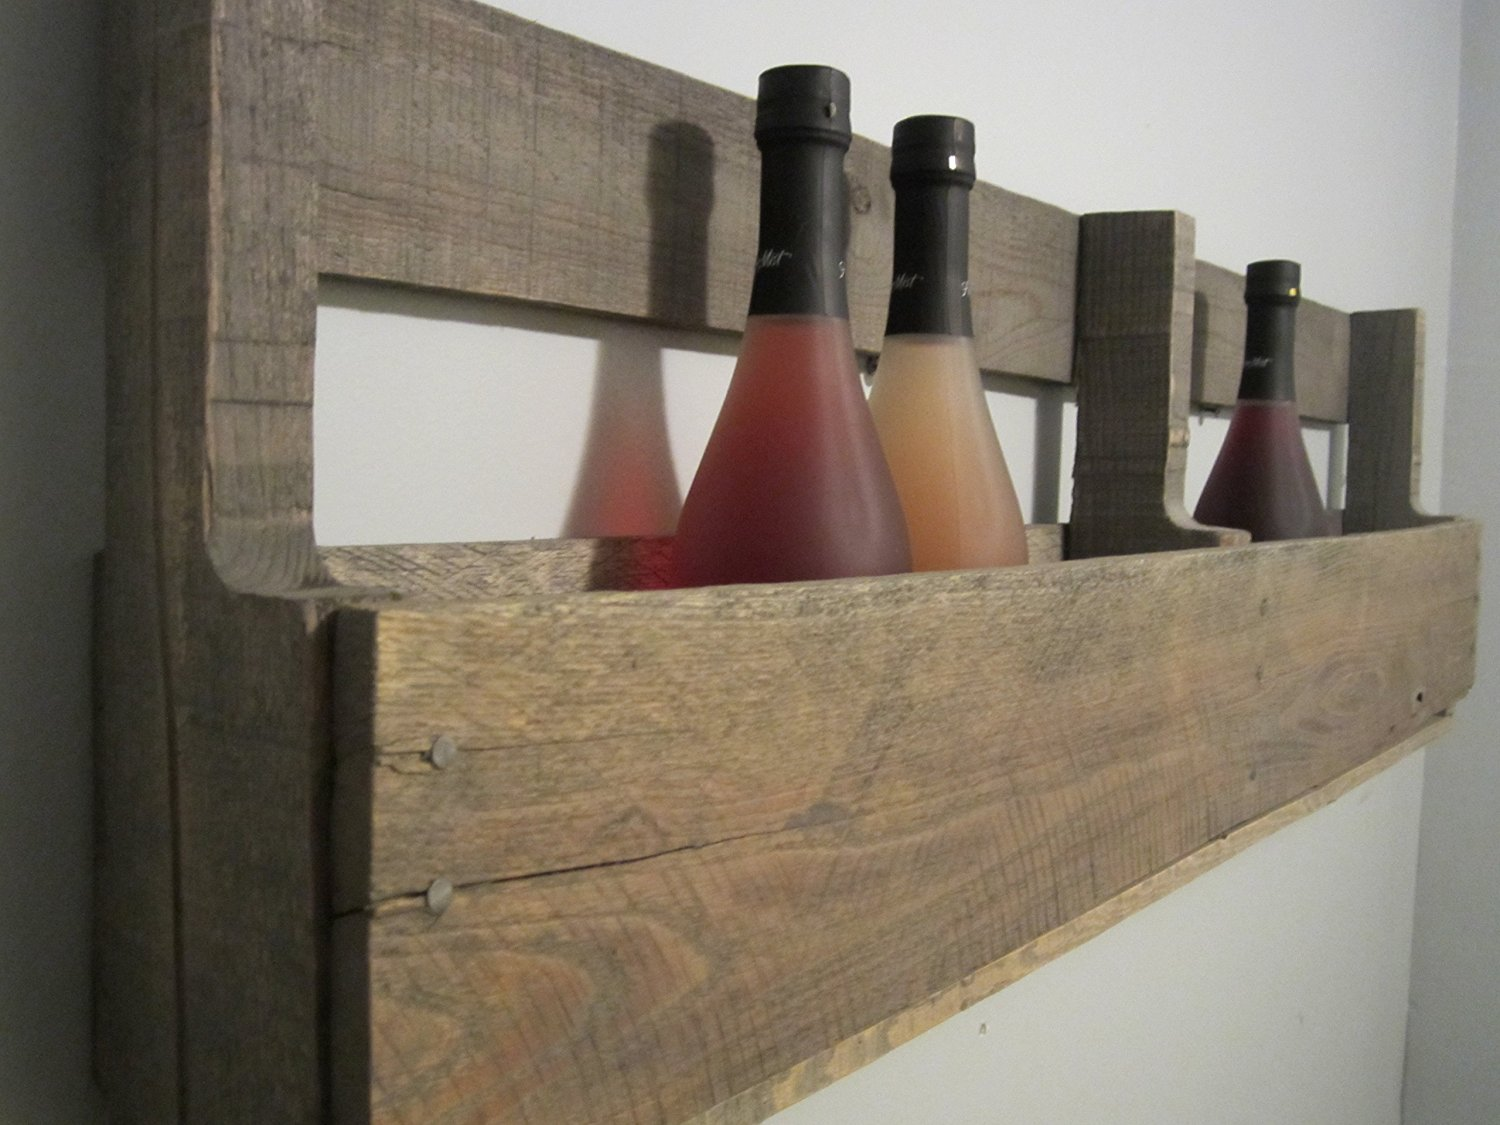 Pallet Wine Rack Barn Wood Gray Finish, Holds 8 Standard Sized 750mL Wine Bottles, Wall Mounted …